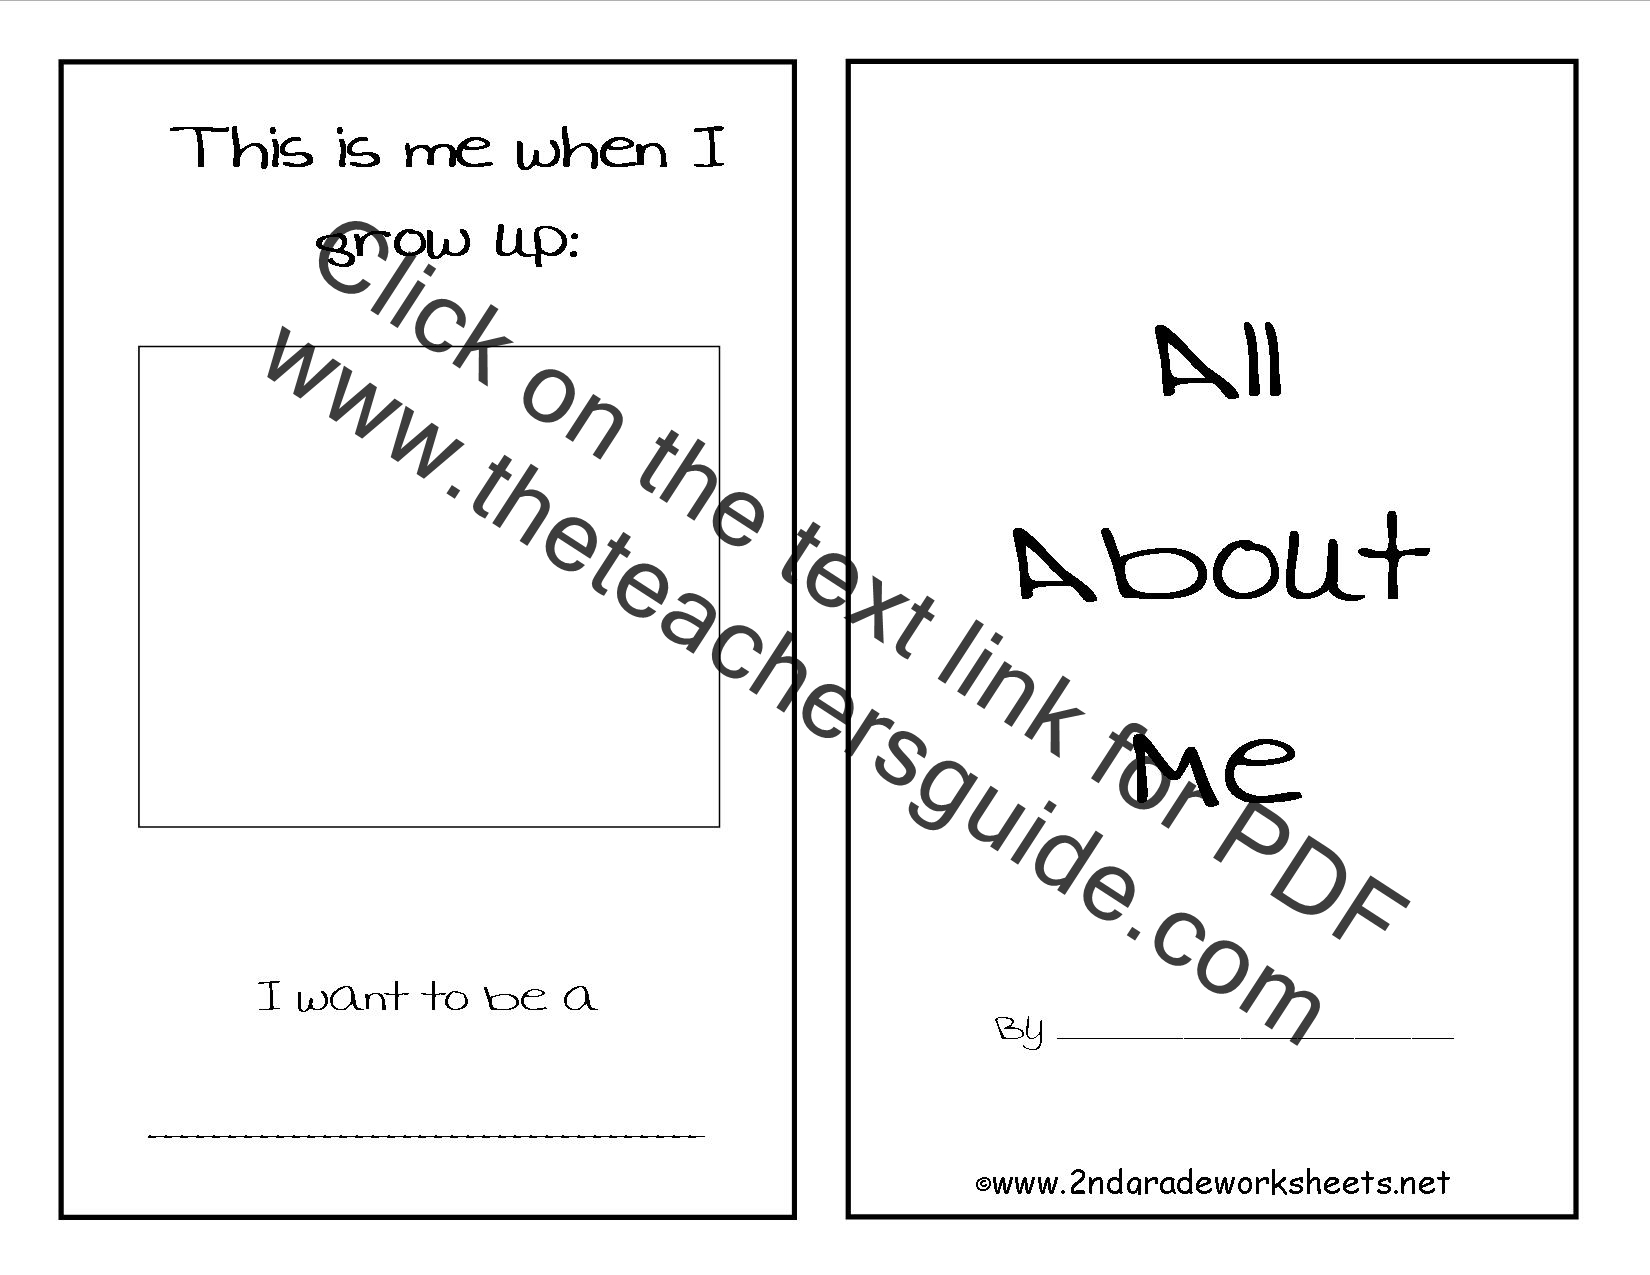 graphic relating to All About Me Free Printable Worksheet named No cost Again in direction of College or university Worksheets and Printouts